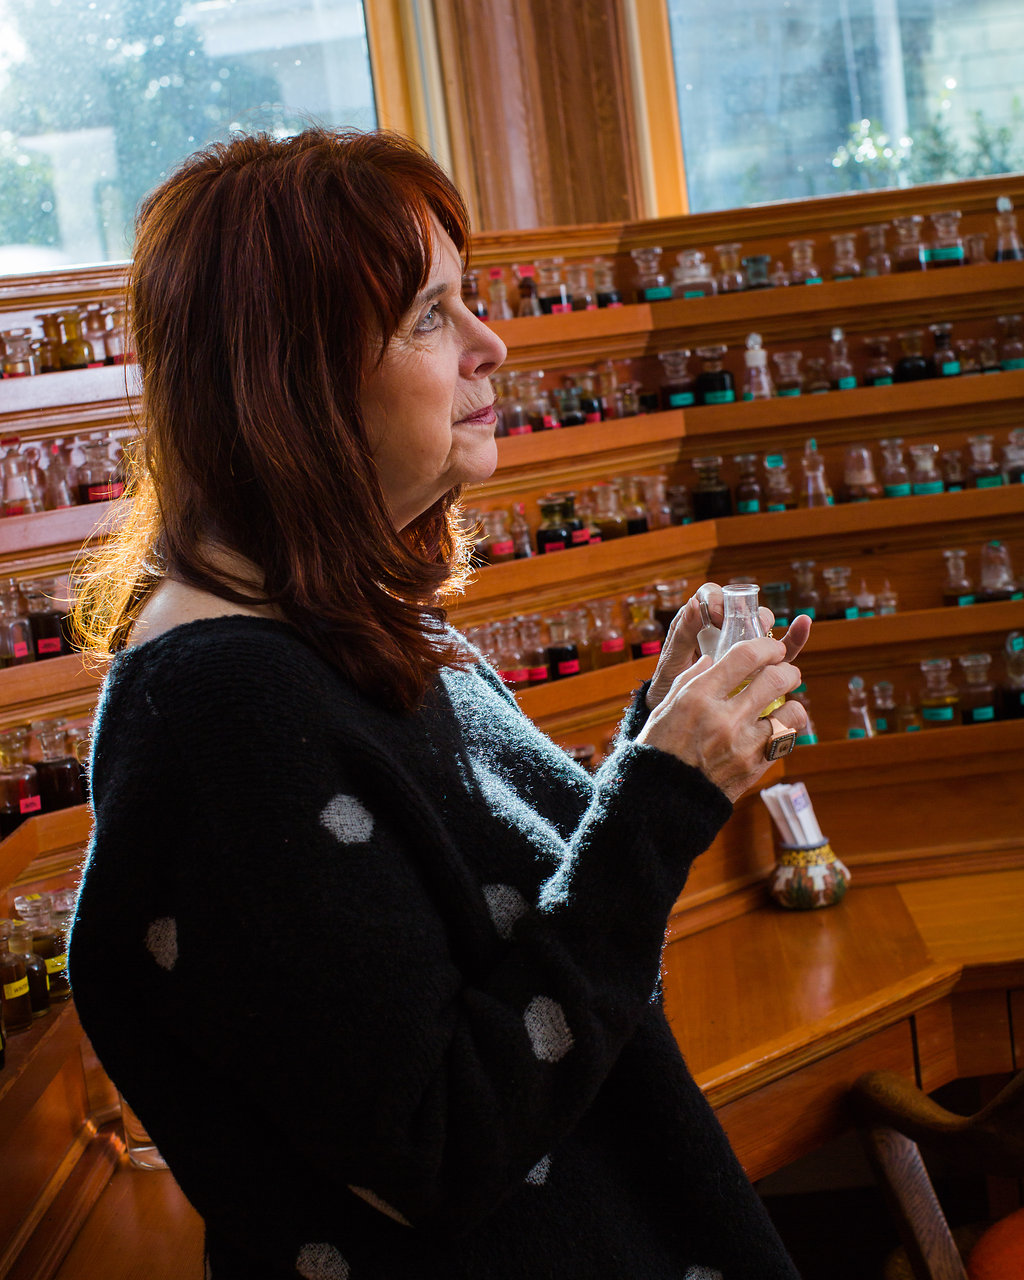 mandy at the organ_aftelierperfumes